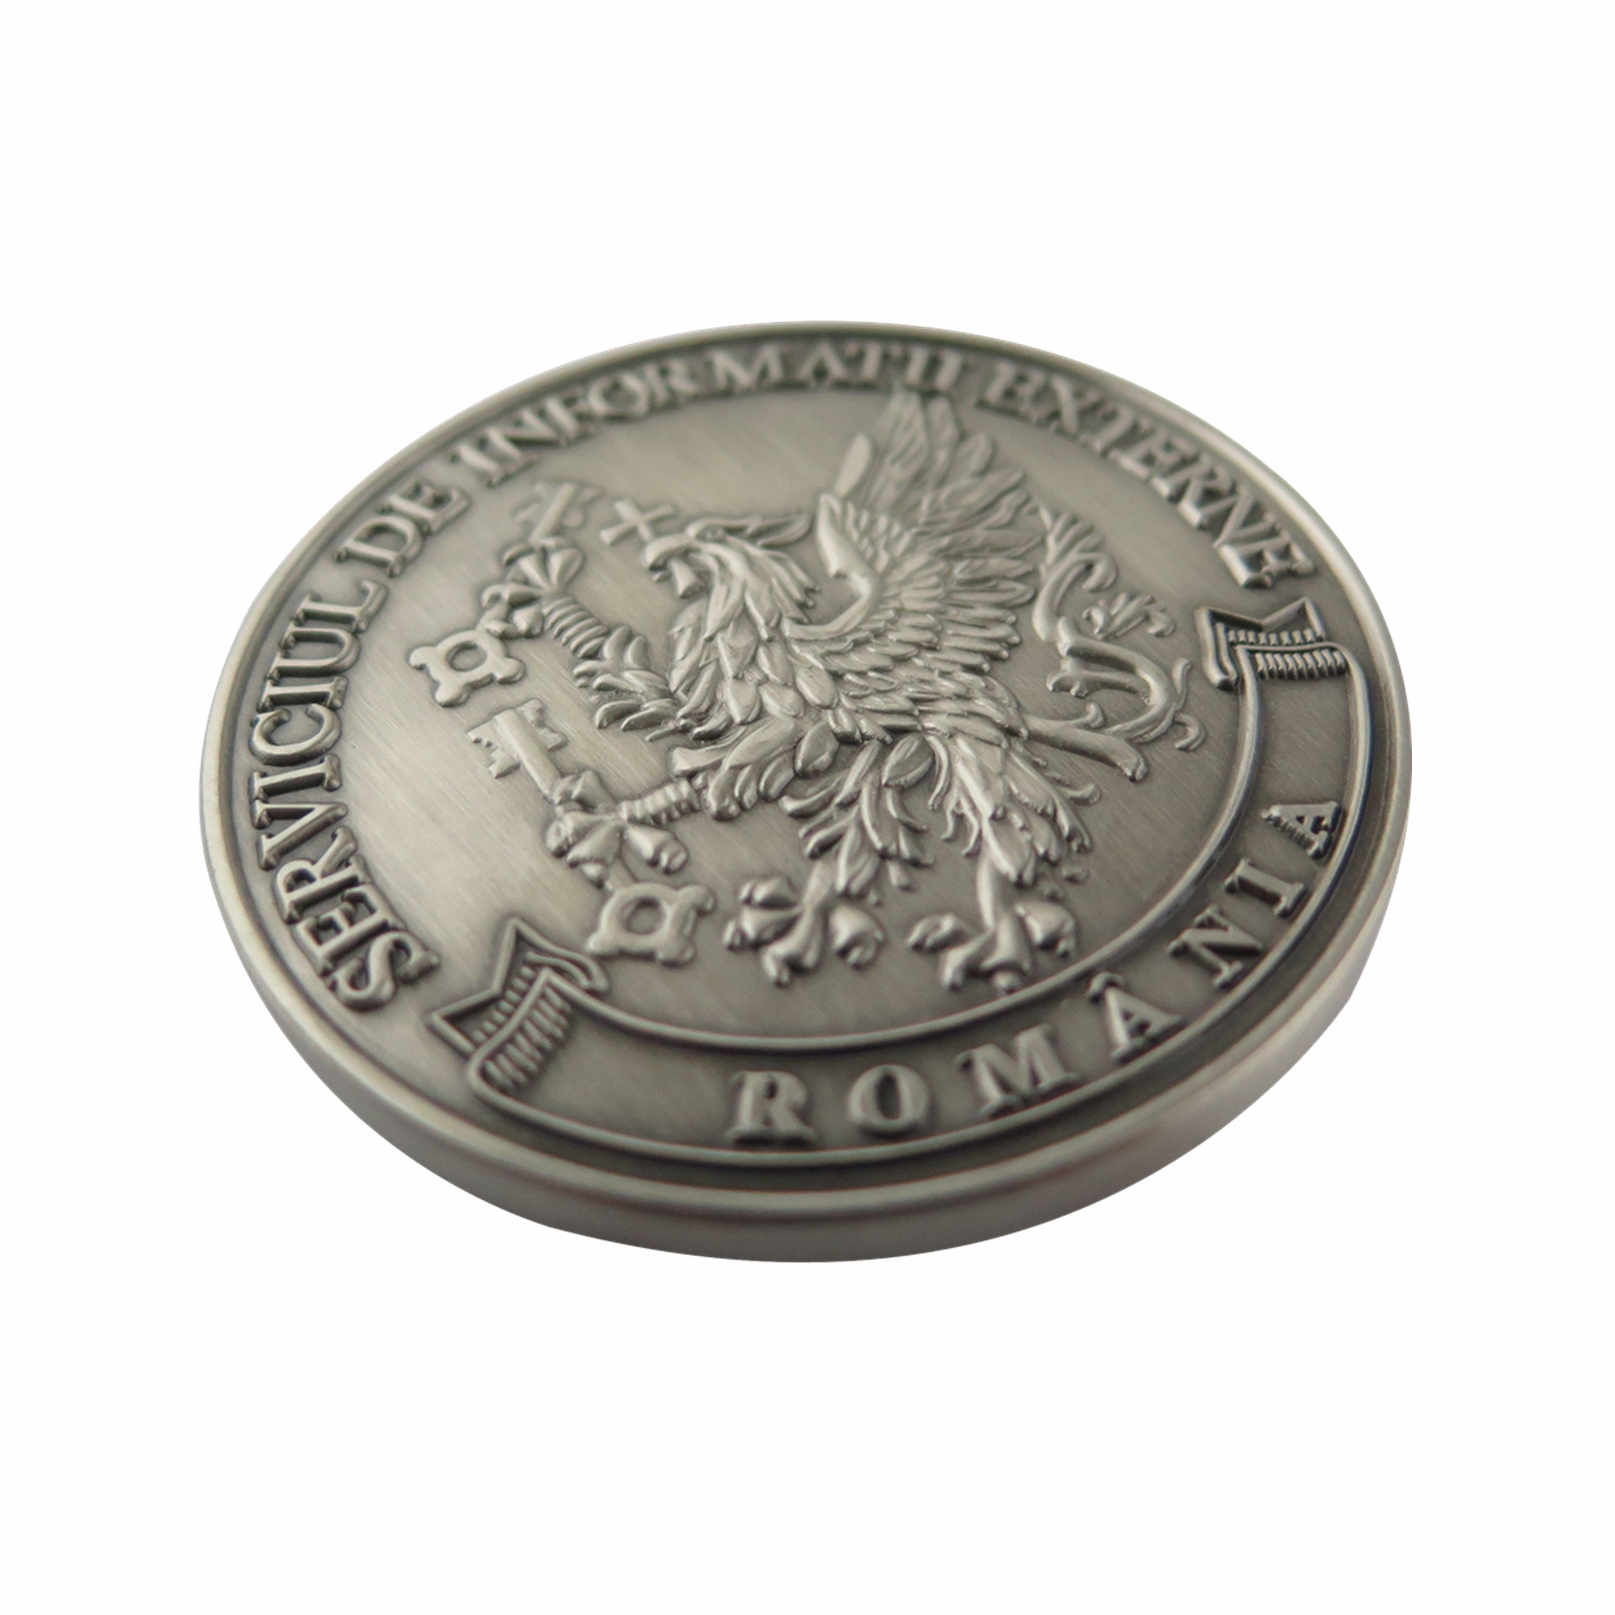 Replica Antique Silver Coins